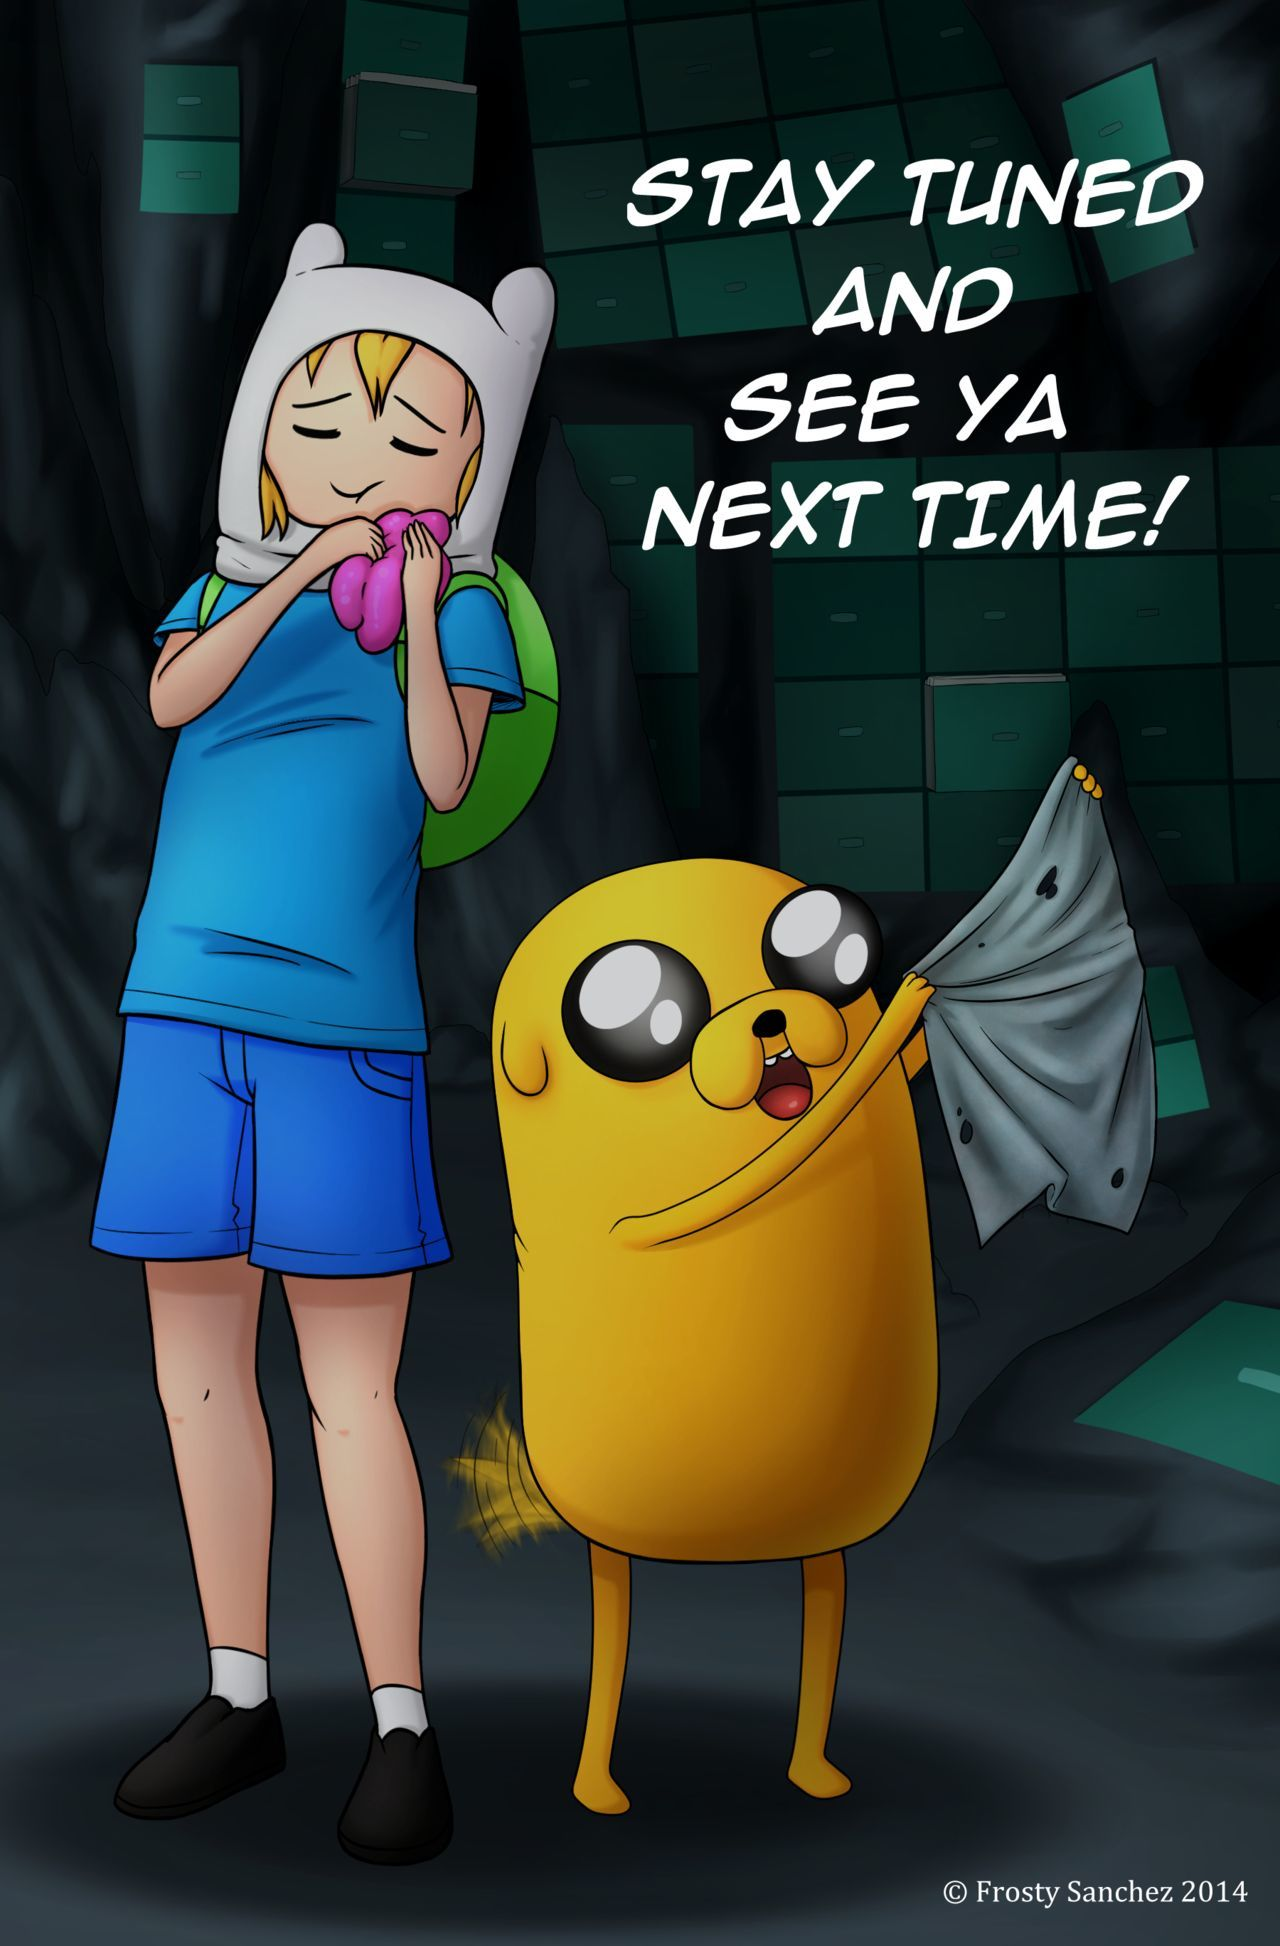 [cubbychambers] MisAdventure Time Issue #2 - What Was Missing (Adventure Time) color - part 2